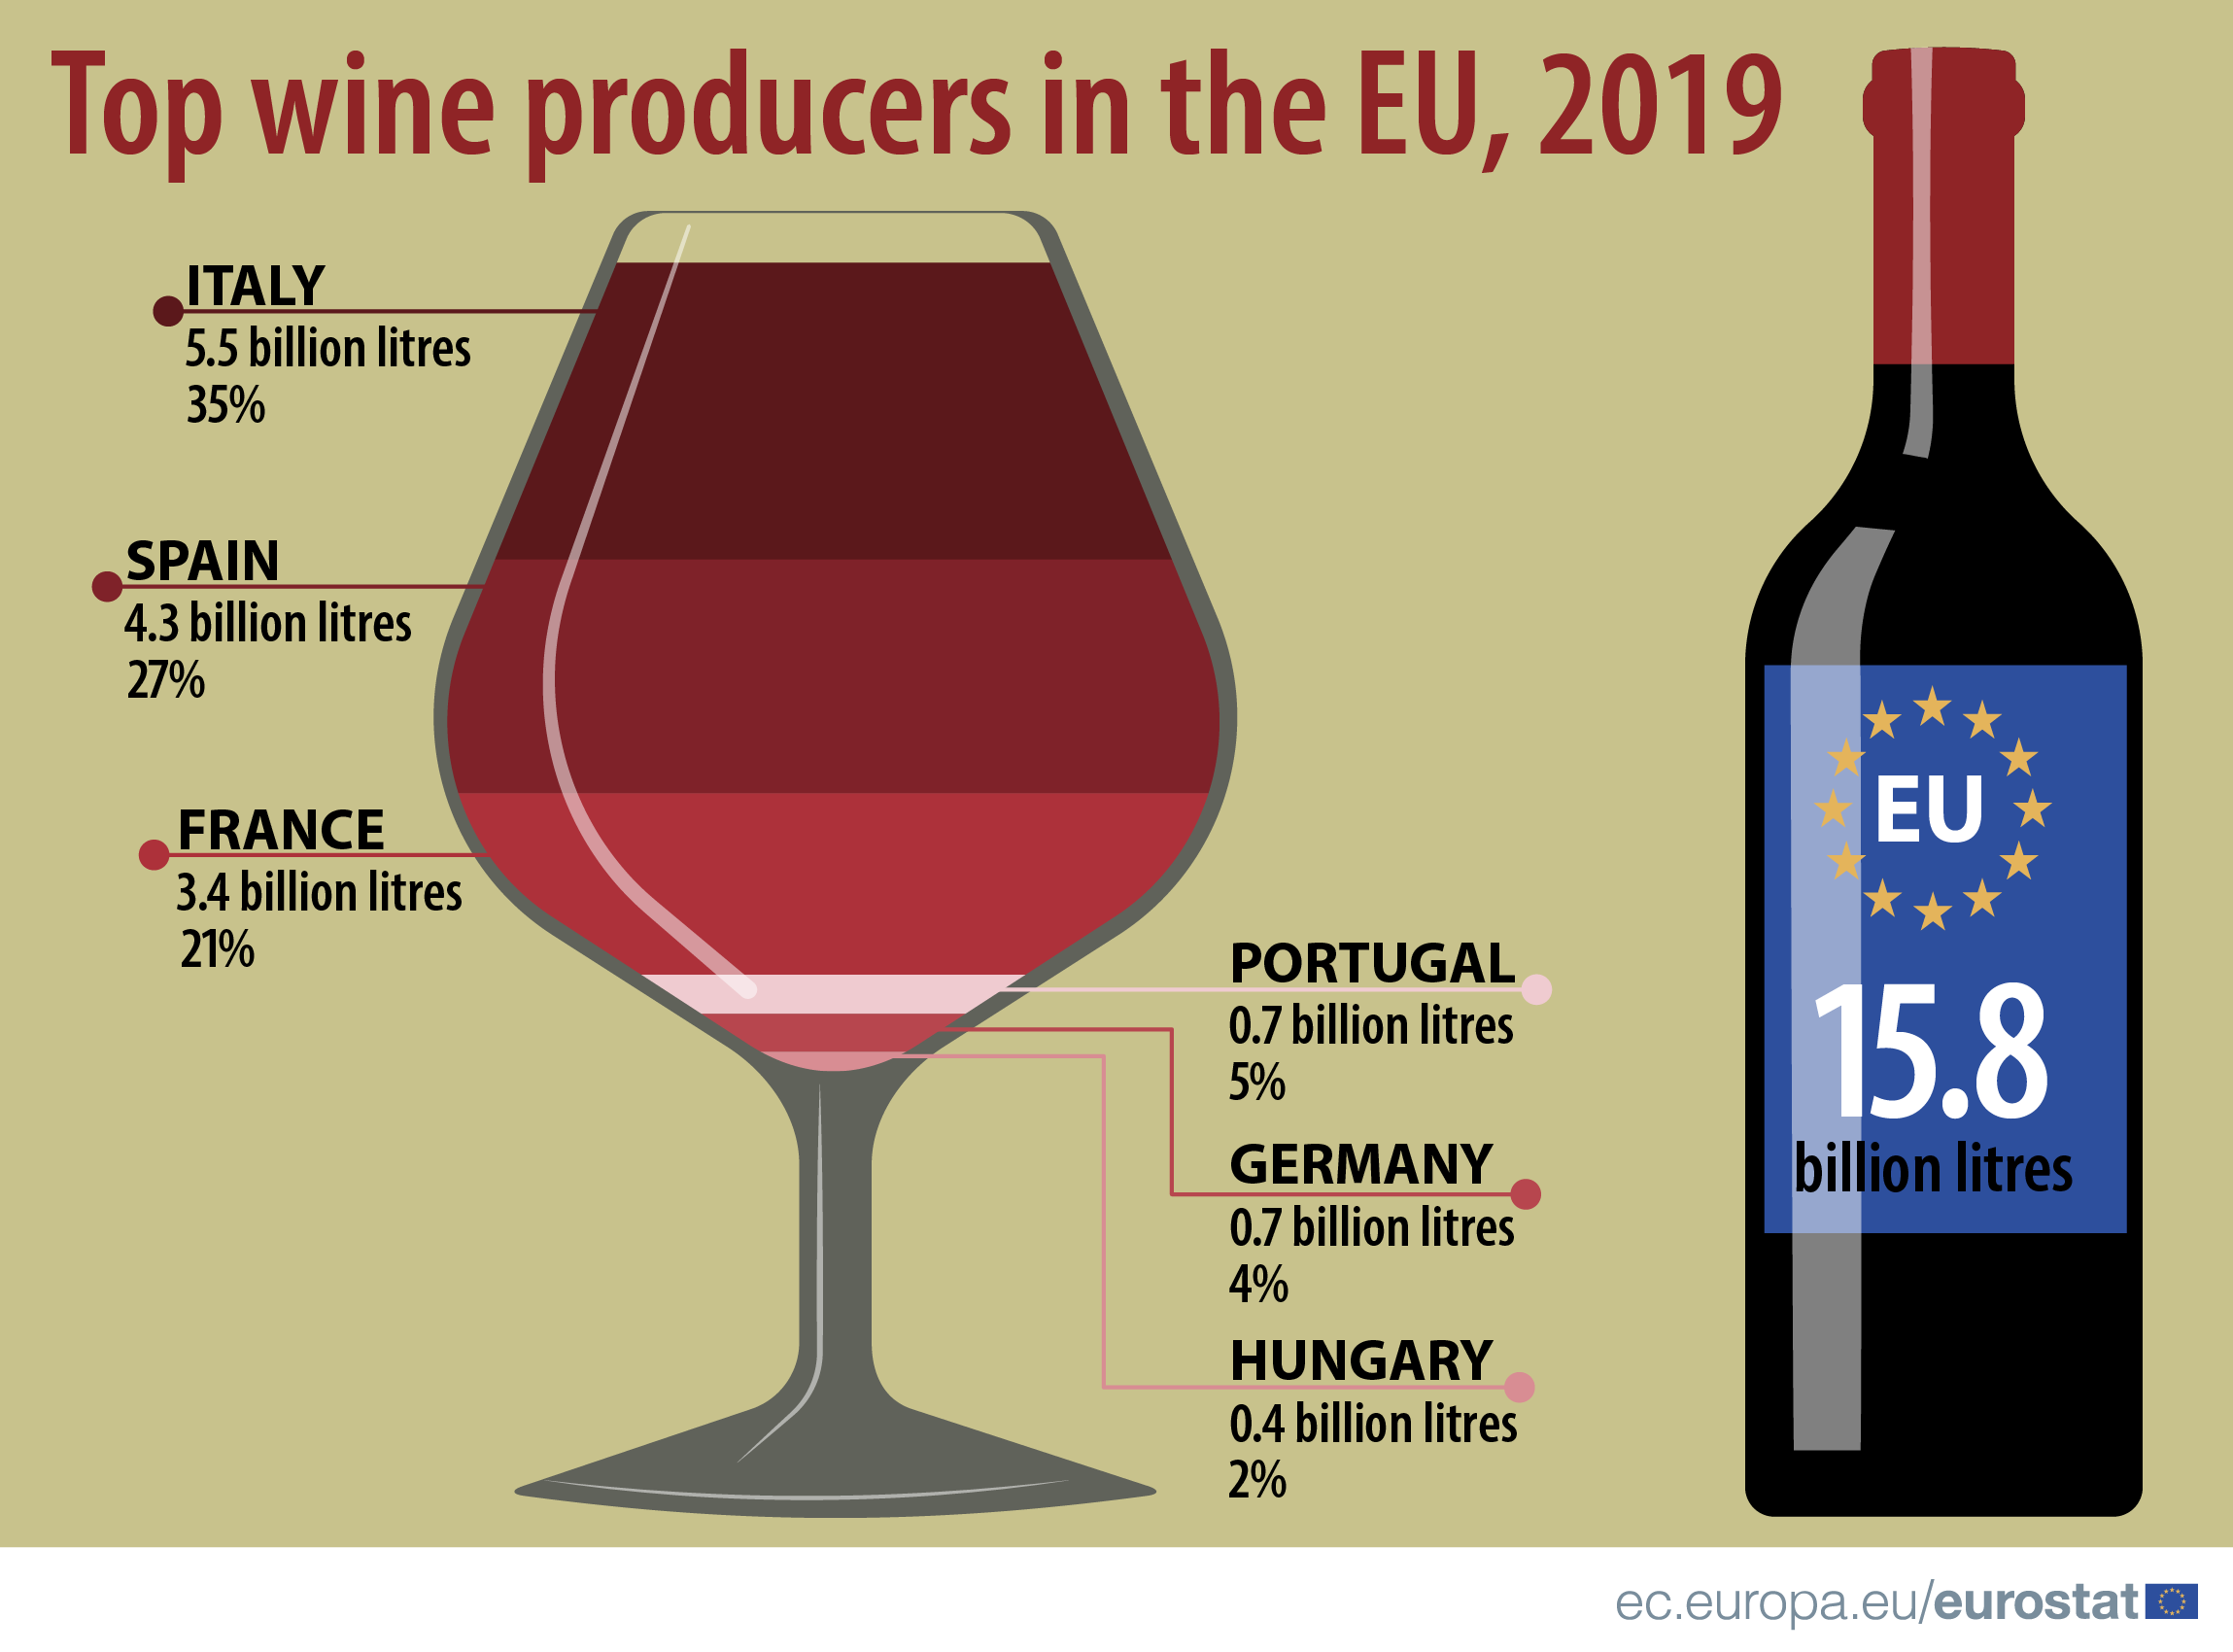 Infographic: Top wine producers in the EU, 2019